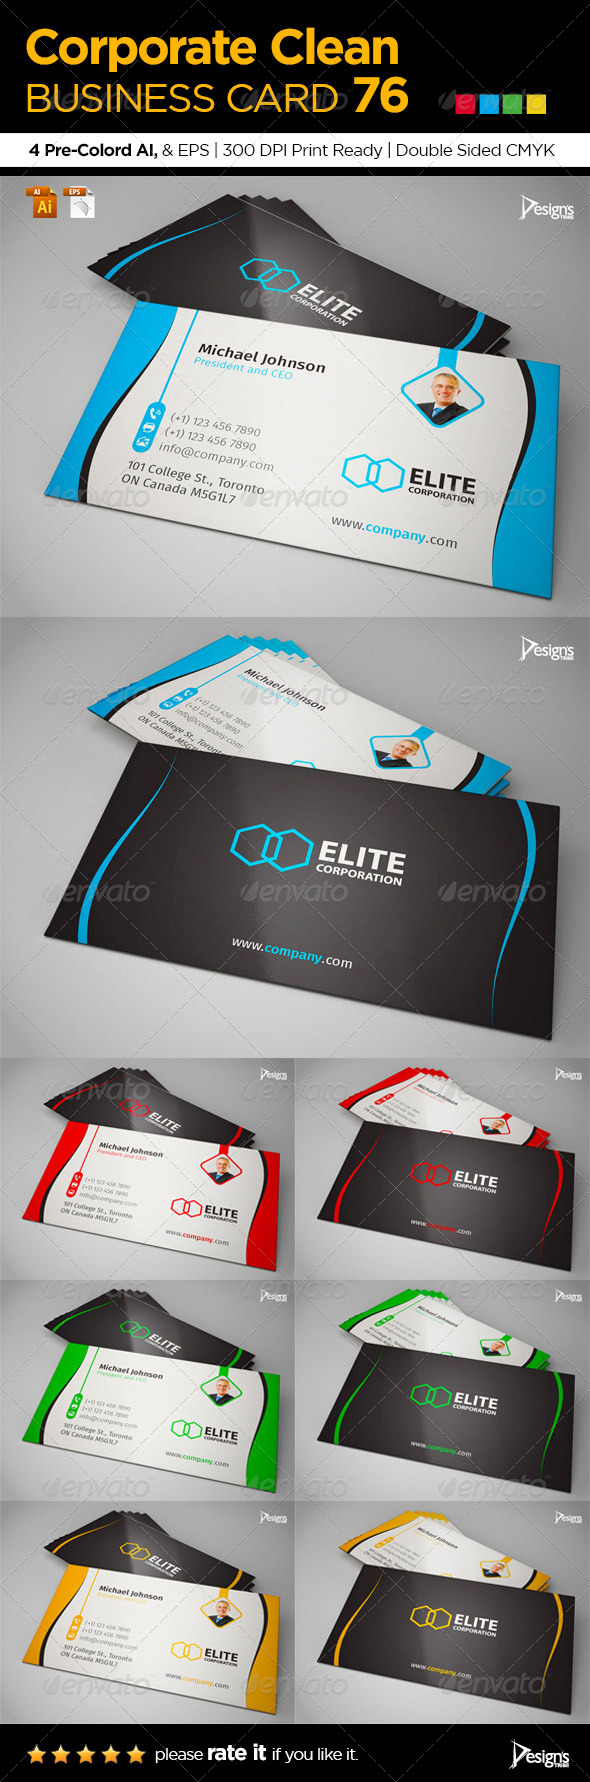 GraphicRiver Corporate Clean Business Card 76 6677337